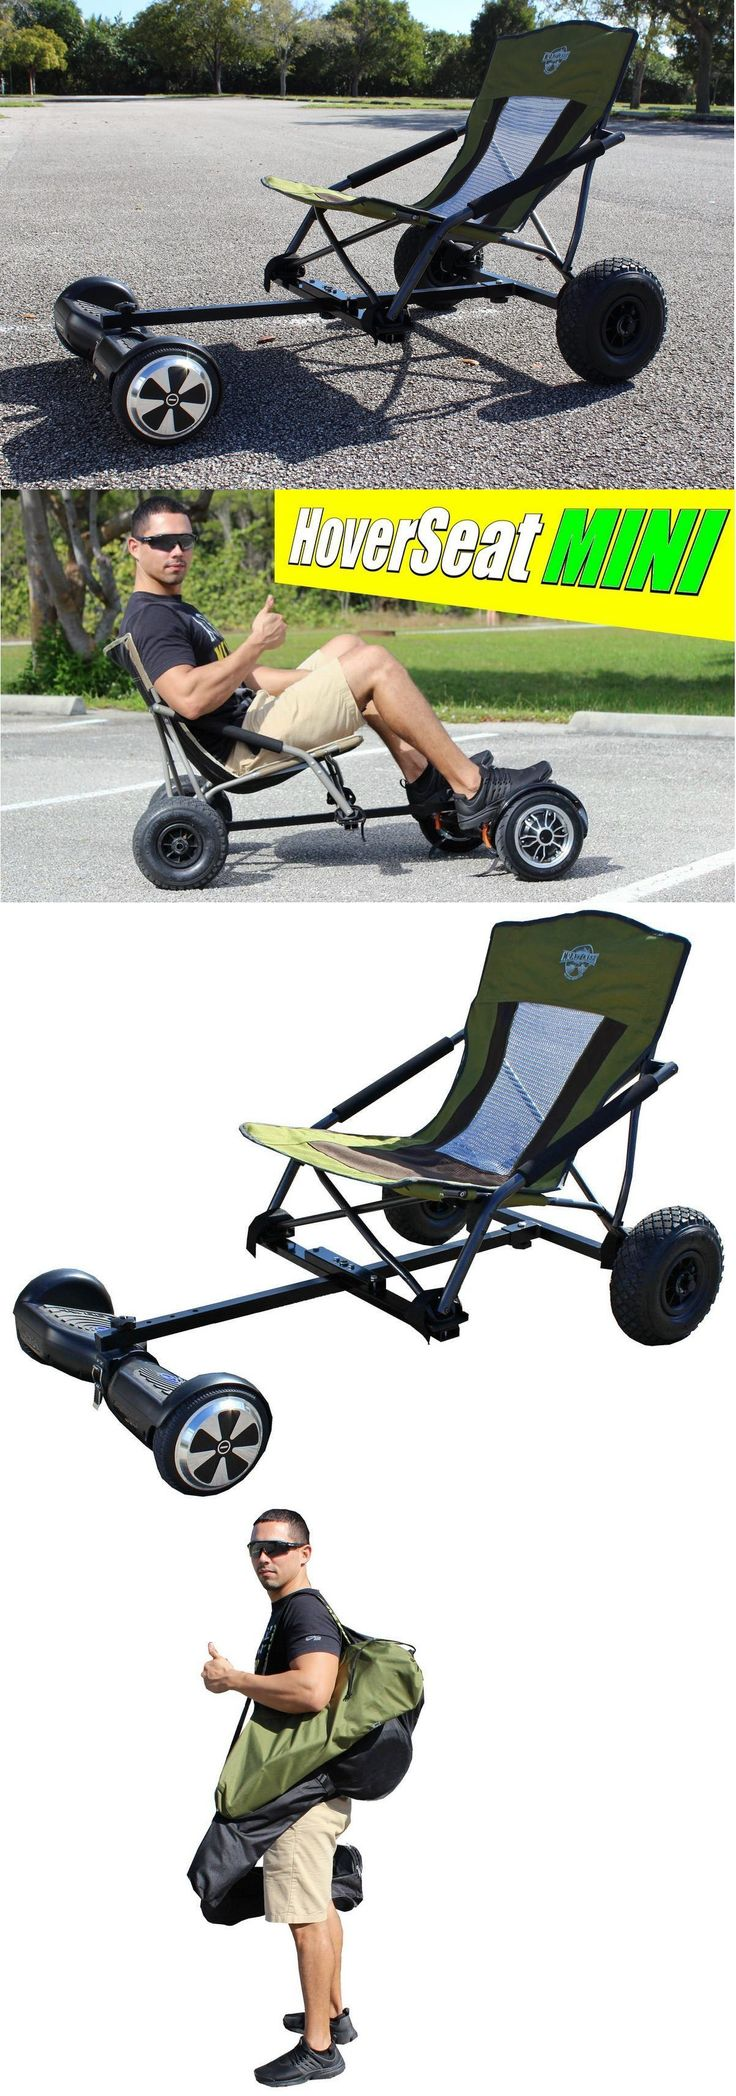 Other Scooters 11329: Hoverseat Seat Mini Hovercart Hoverkart Hover Cart Gokart BUY IT NOW ONLY: $139.0